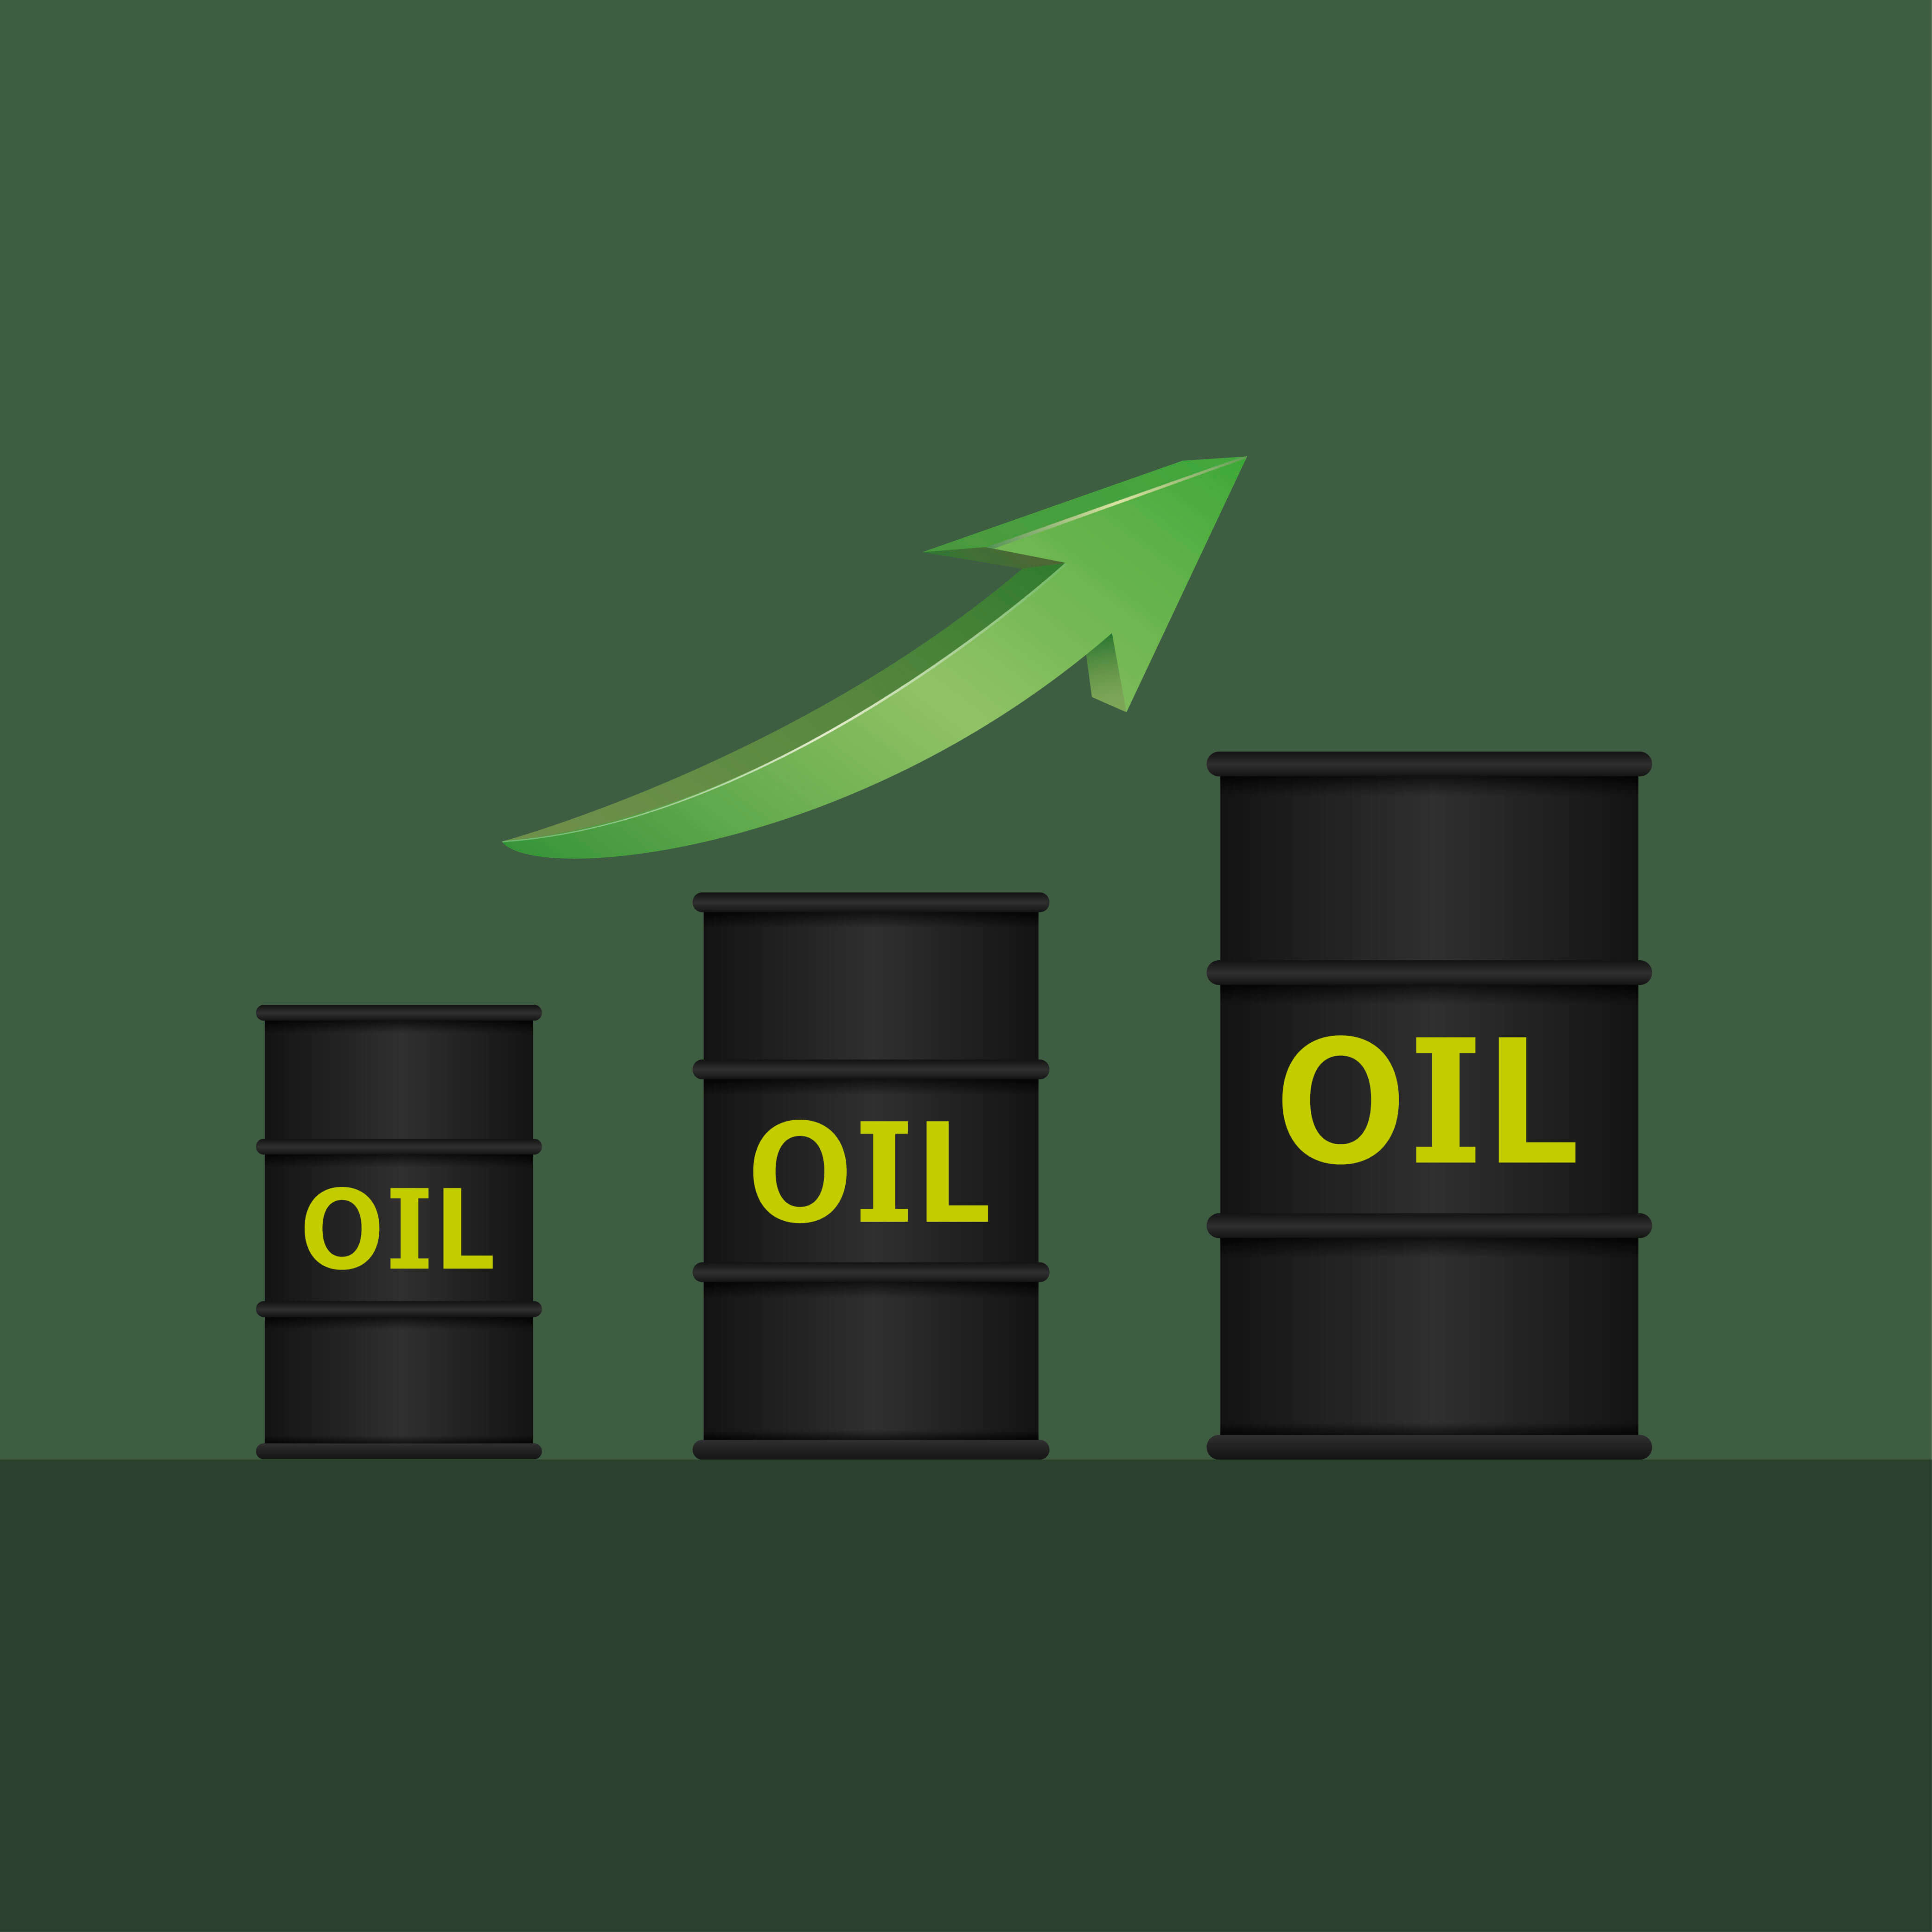 Oil market is unstable due to economic problems and regional tensions